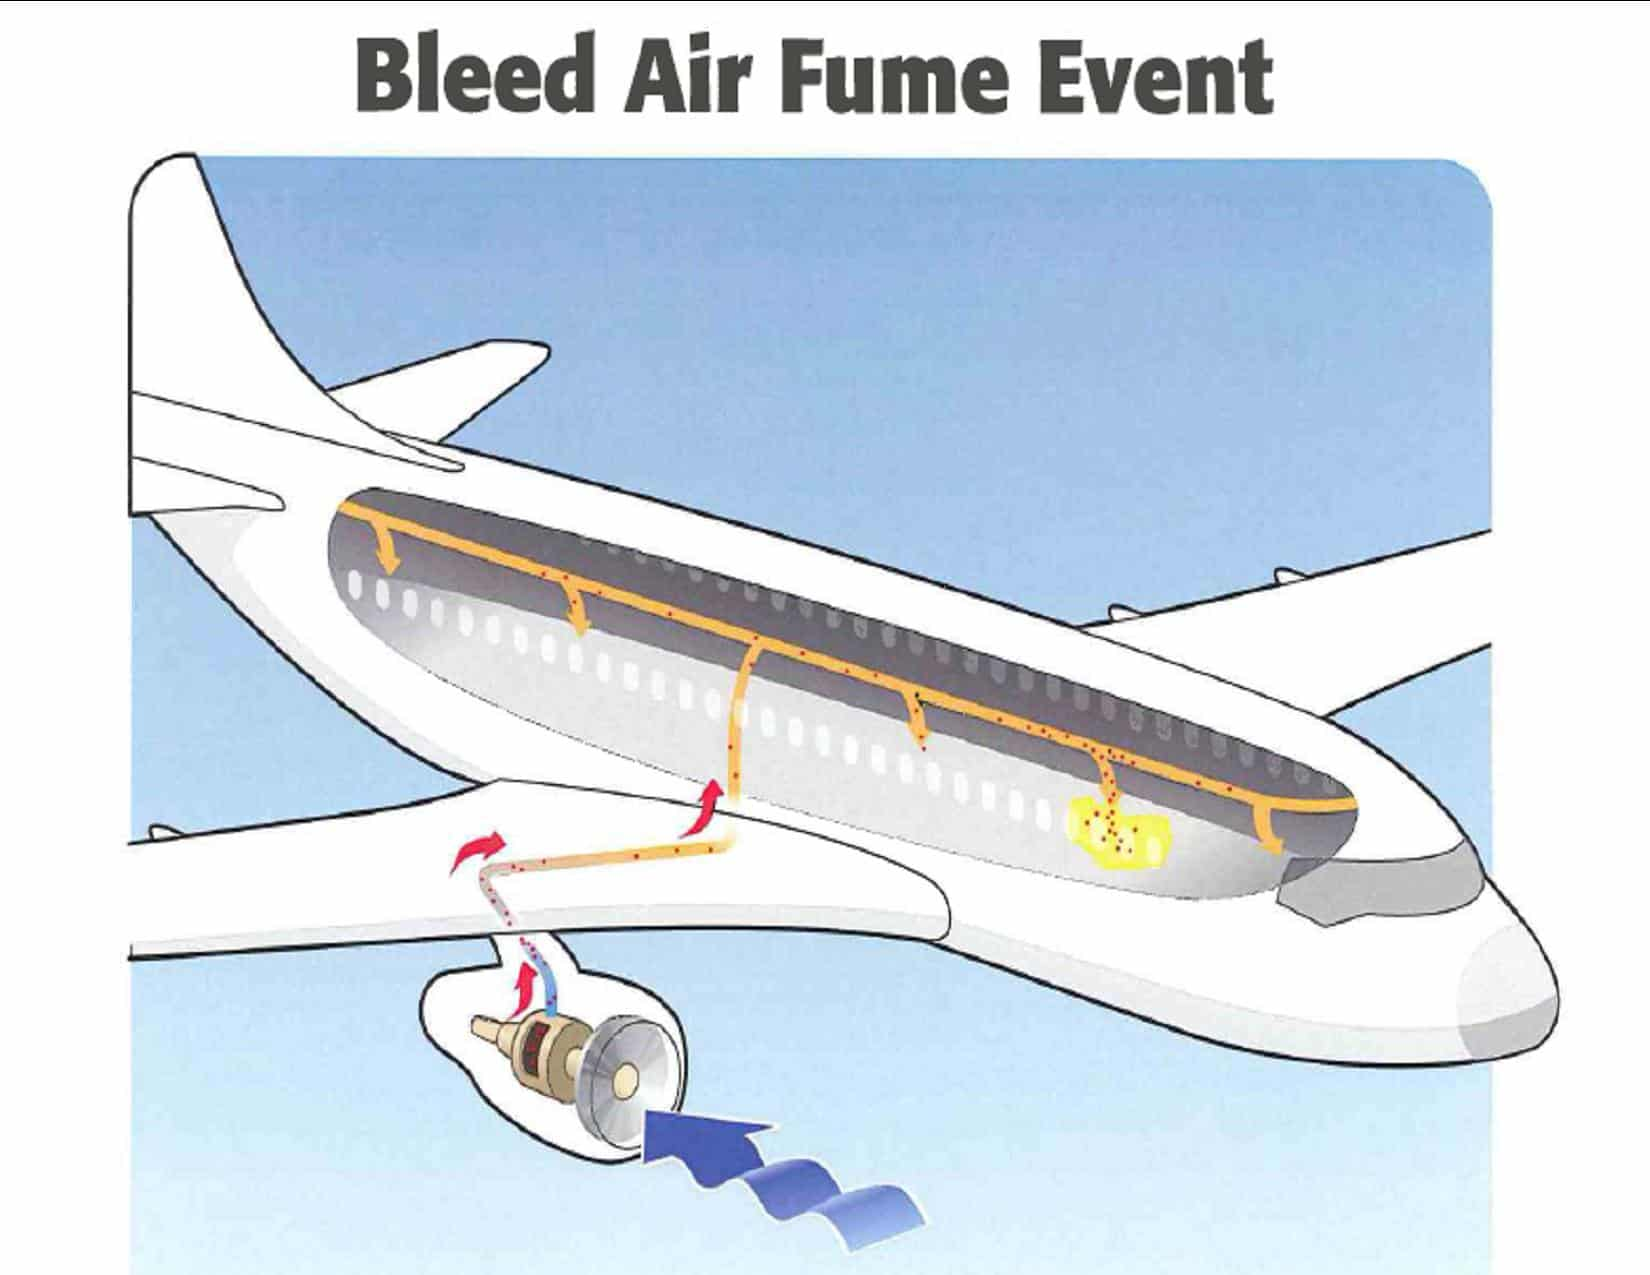 Contaminate air on airplanes